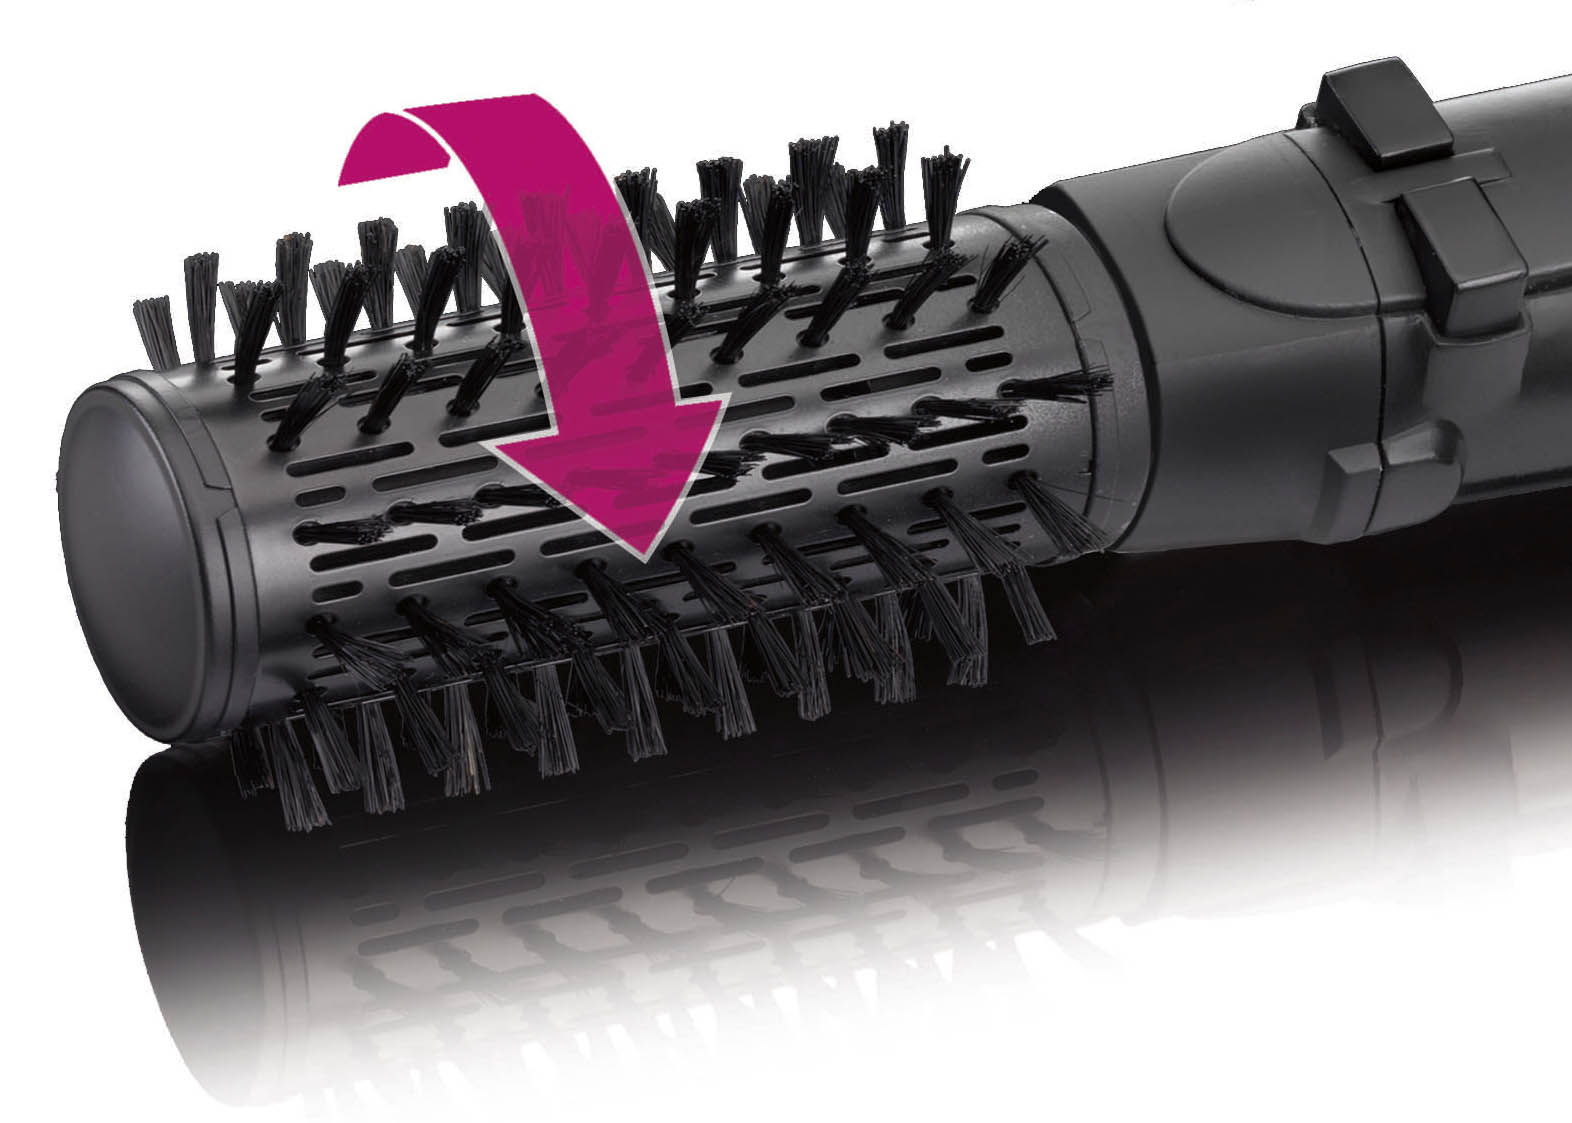 Revolutionary rotating styling brush moves clockwise and counter-clockwise